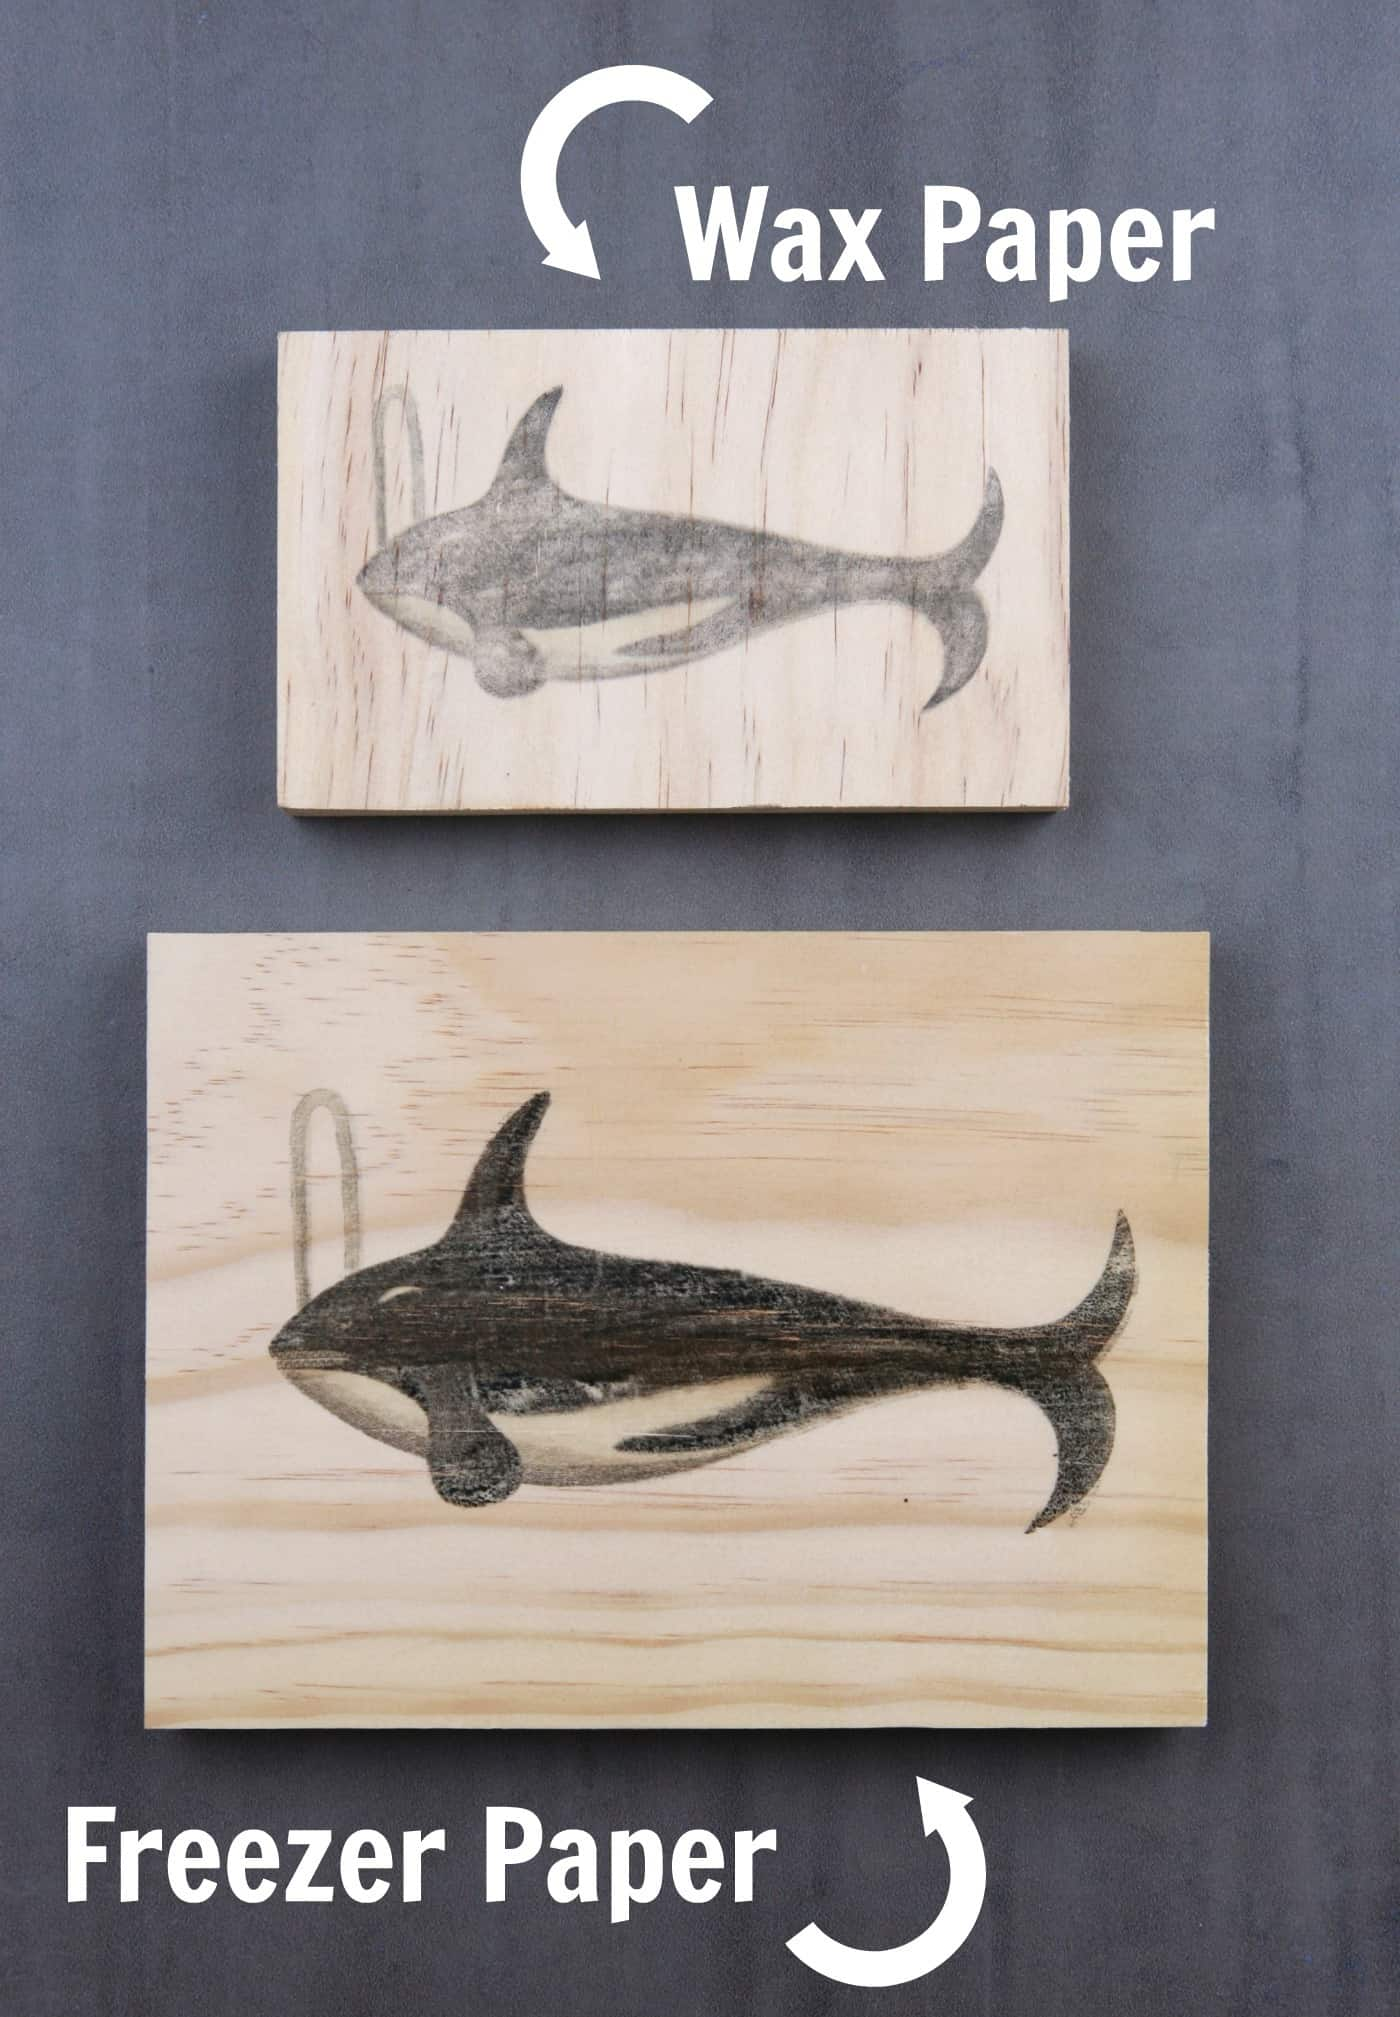 whale images using wax paper and freezer paper to transfer onto wood